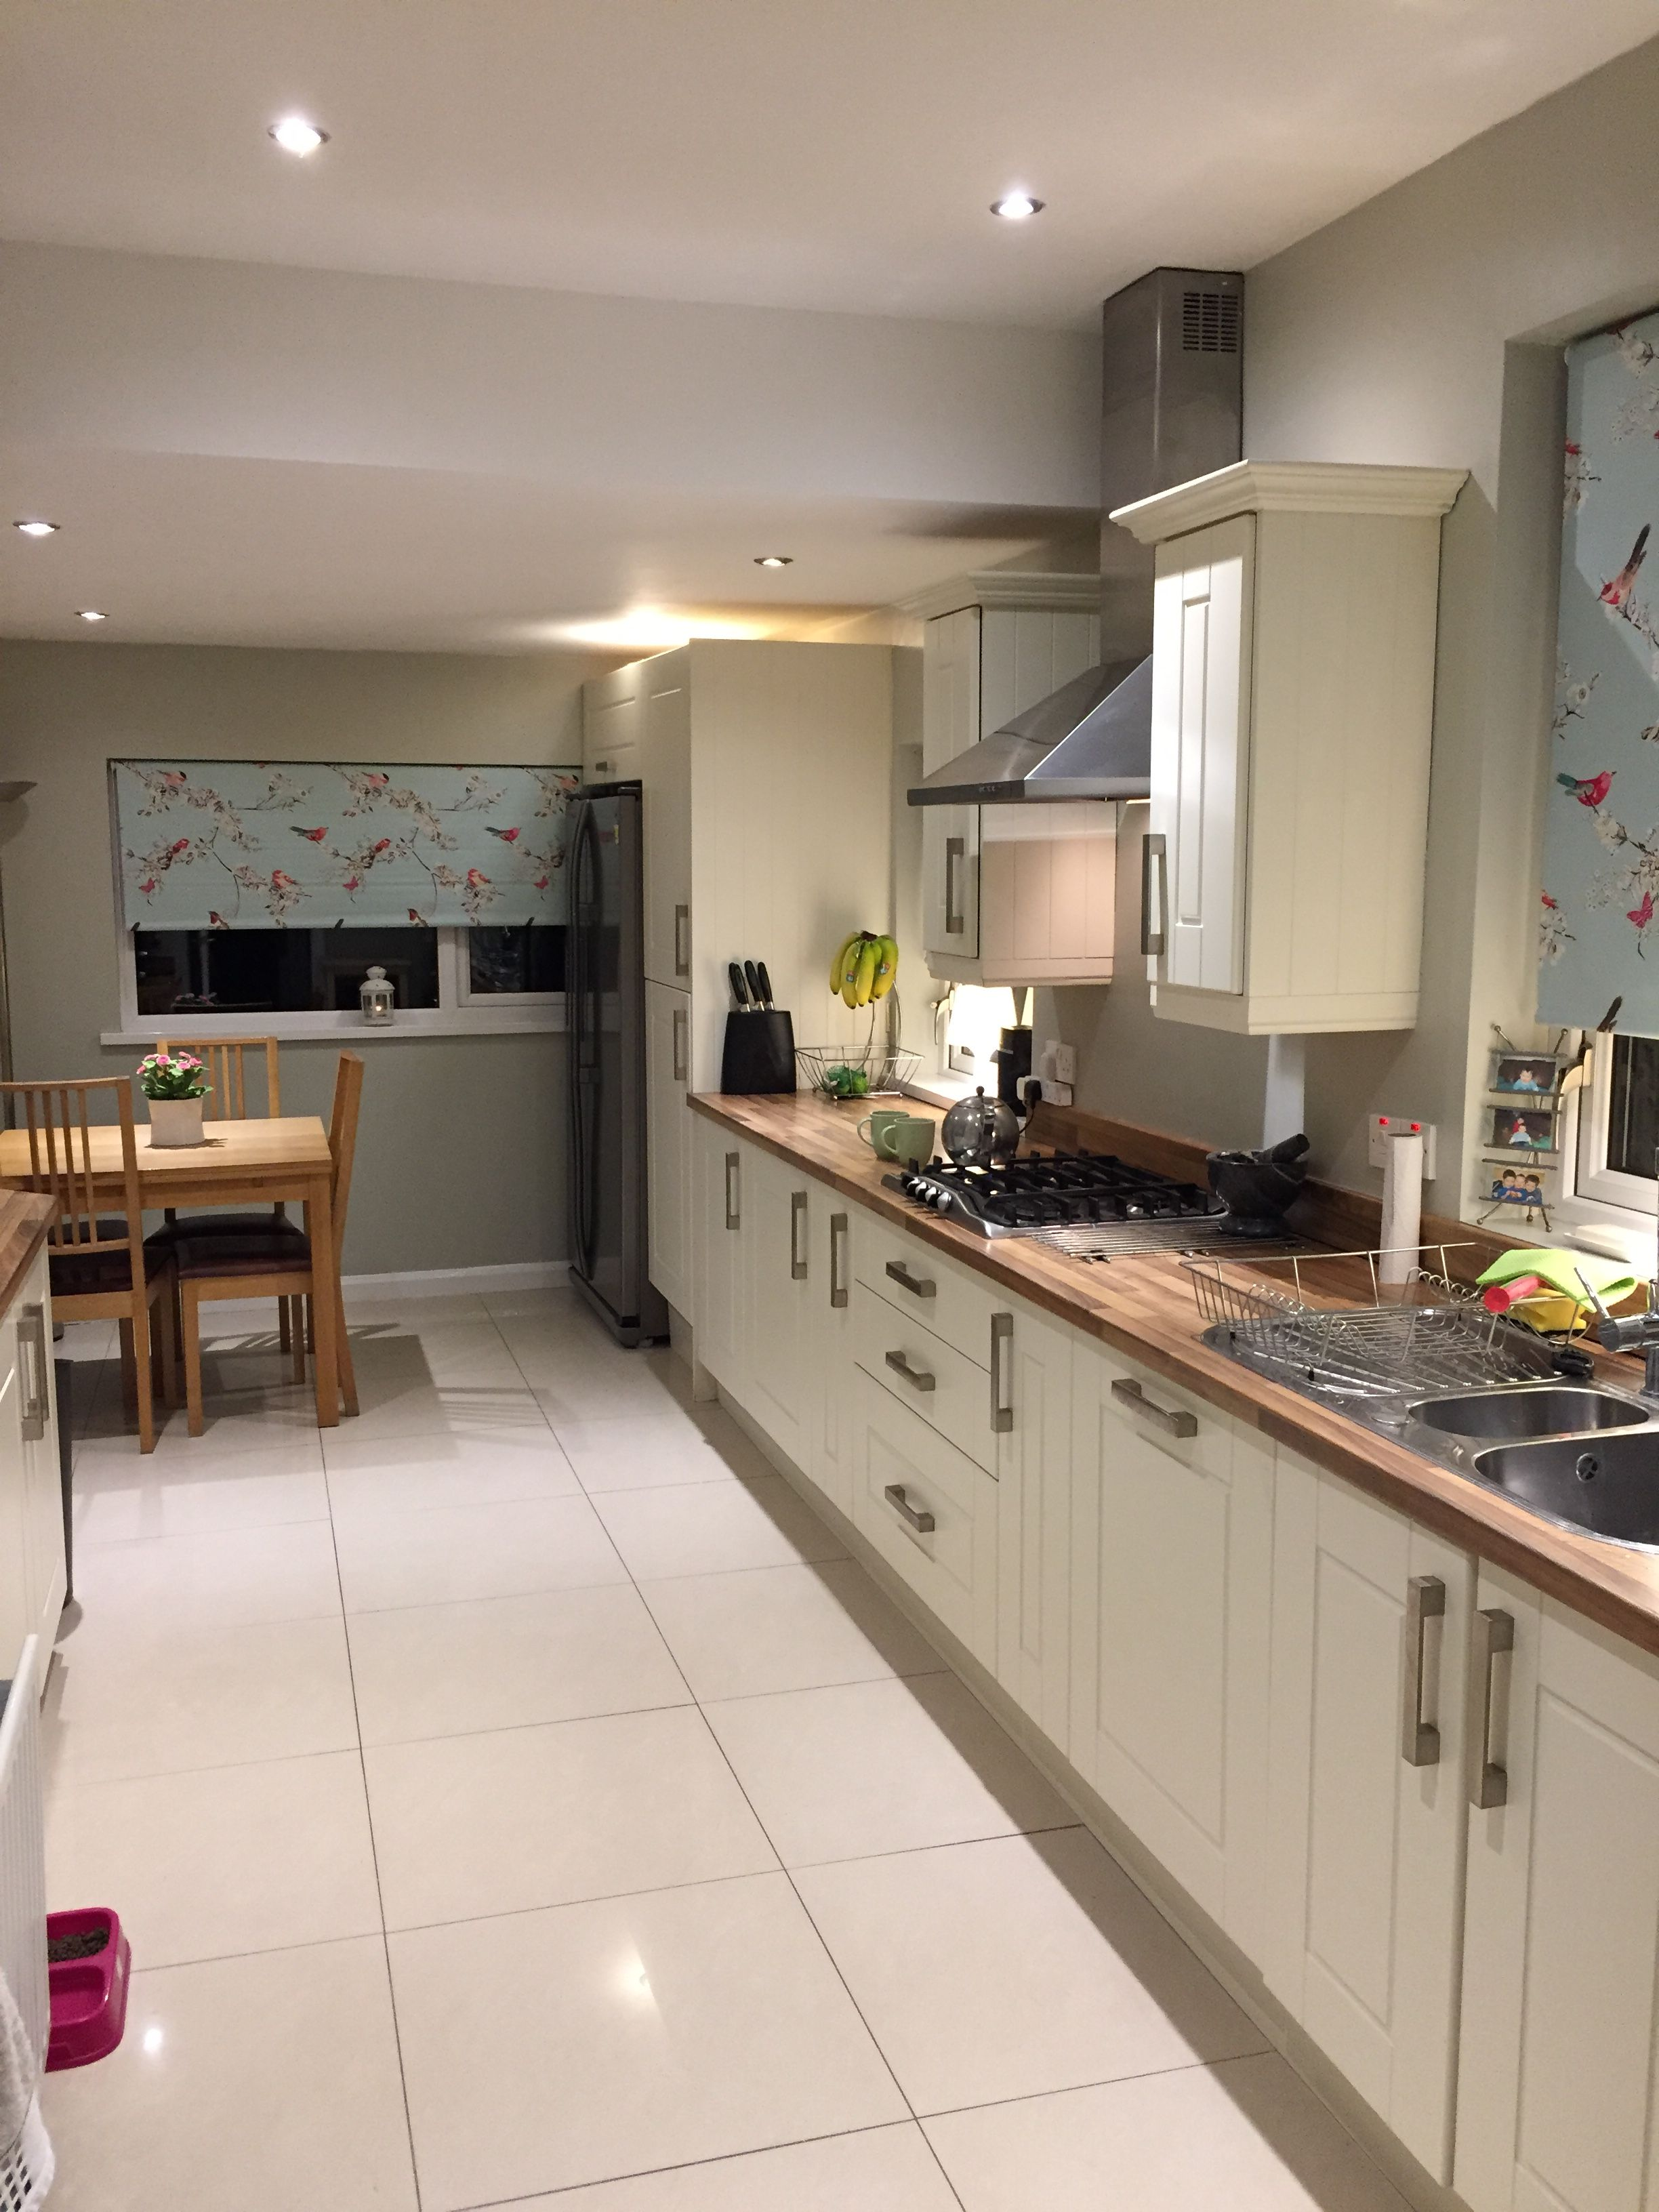 Best Kitchen Decor For Shaker Units Farrow And Ball Cromarty 400 x 300